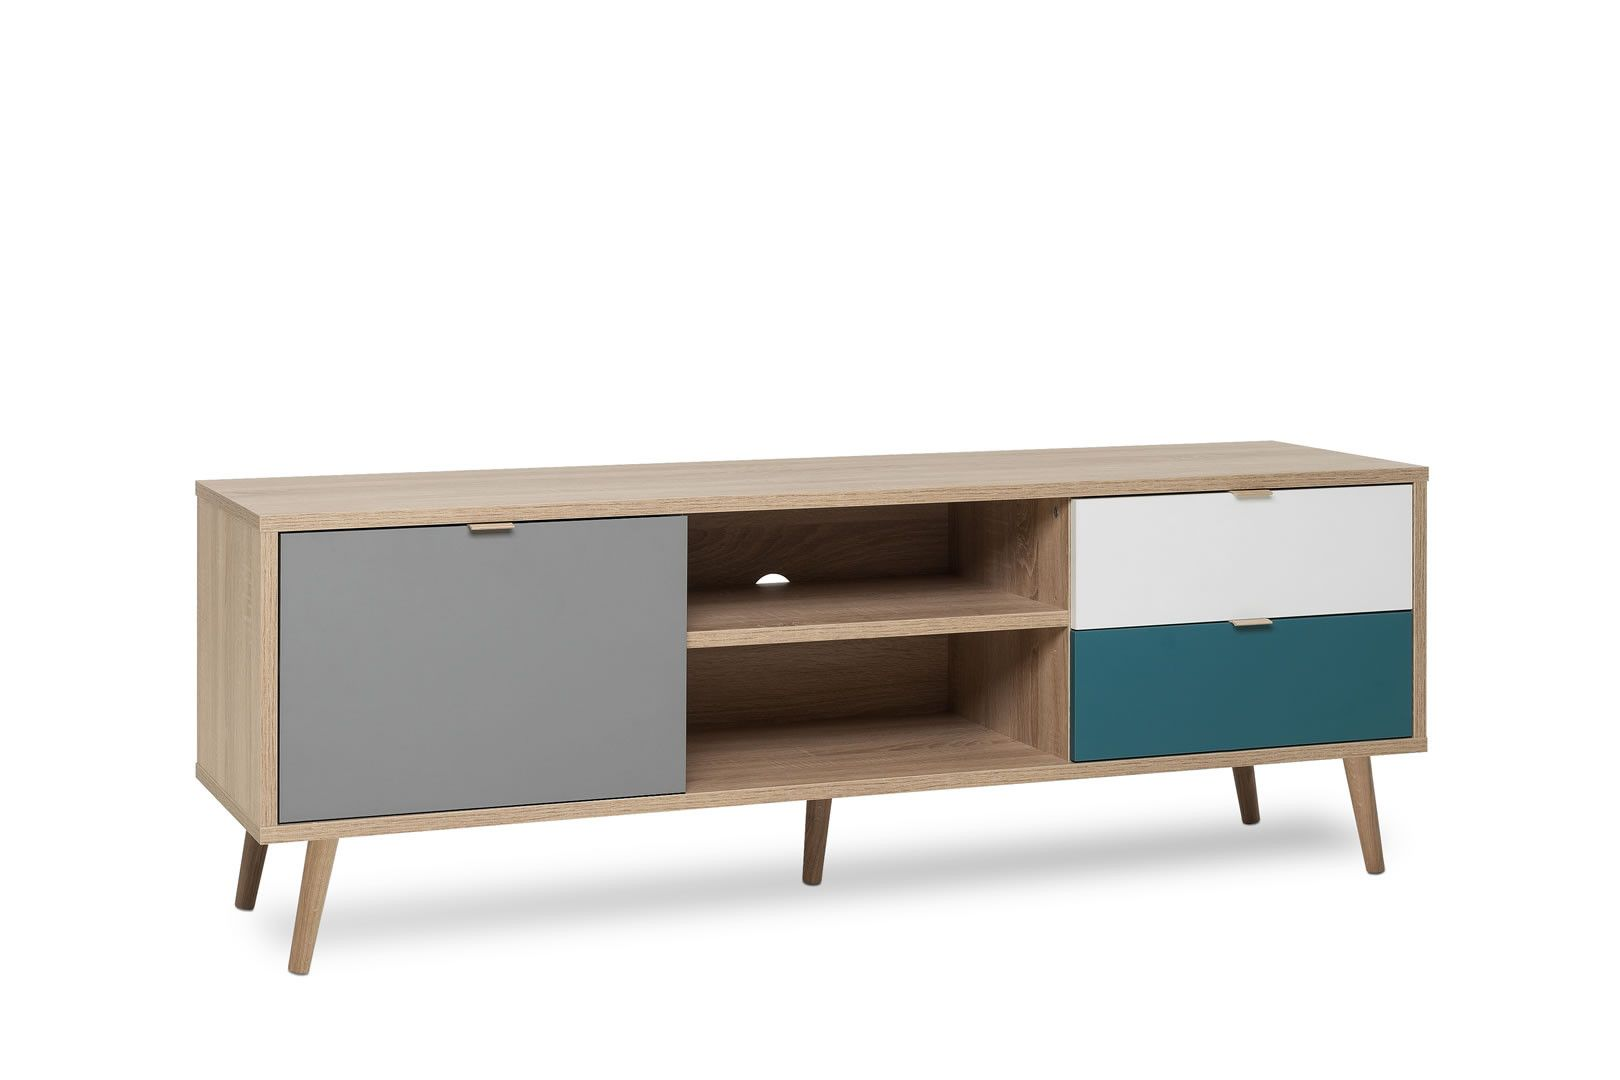 Sejour Scandinave Meuble Made In Europe Meuble Tv 1 Porte 2 Tiroirs Style Scandinave Anave